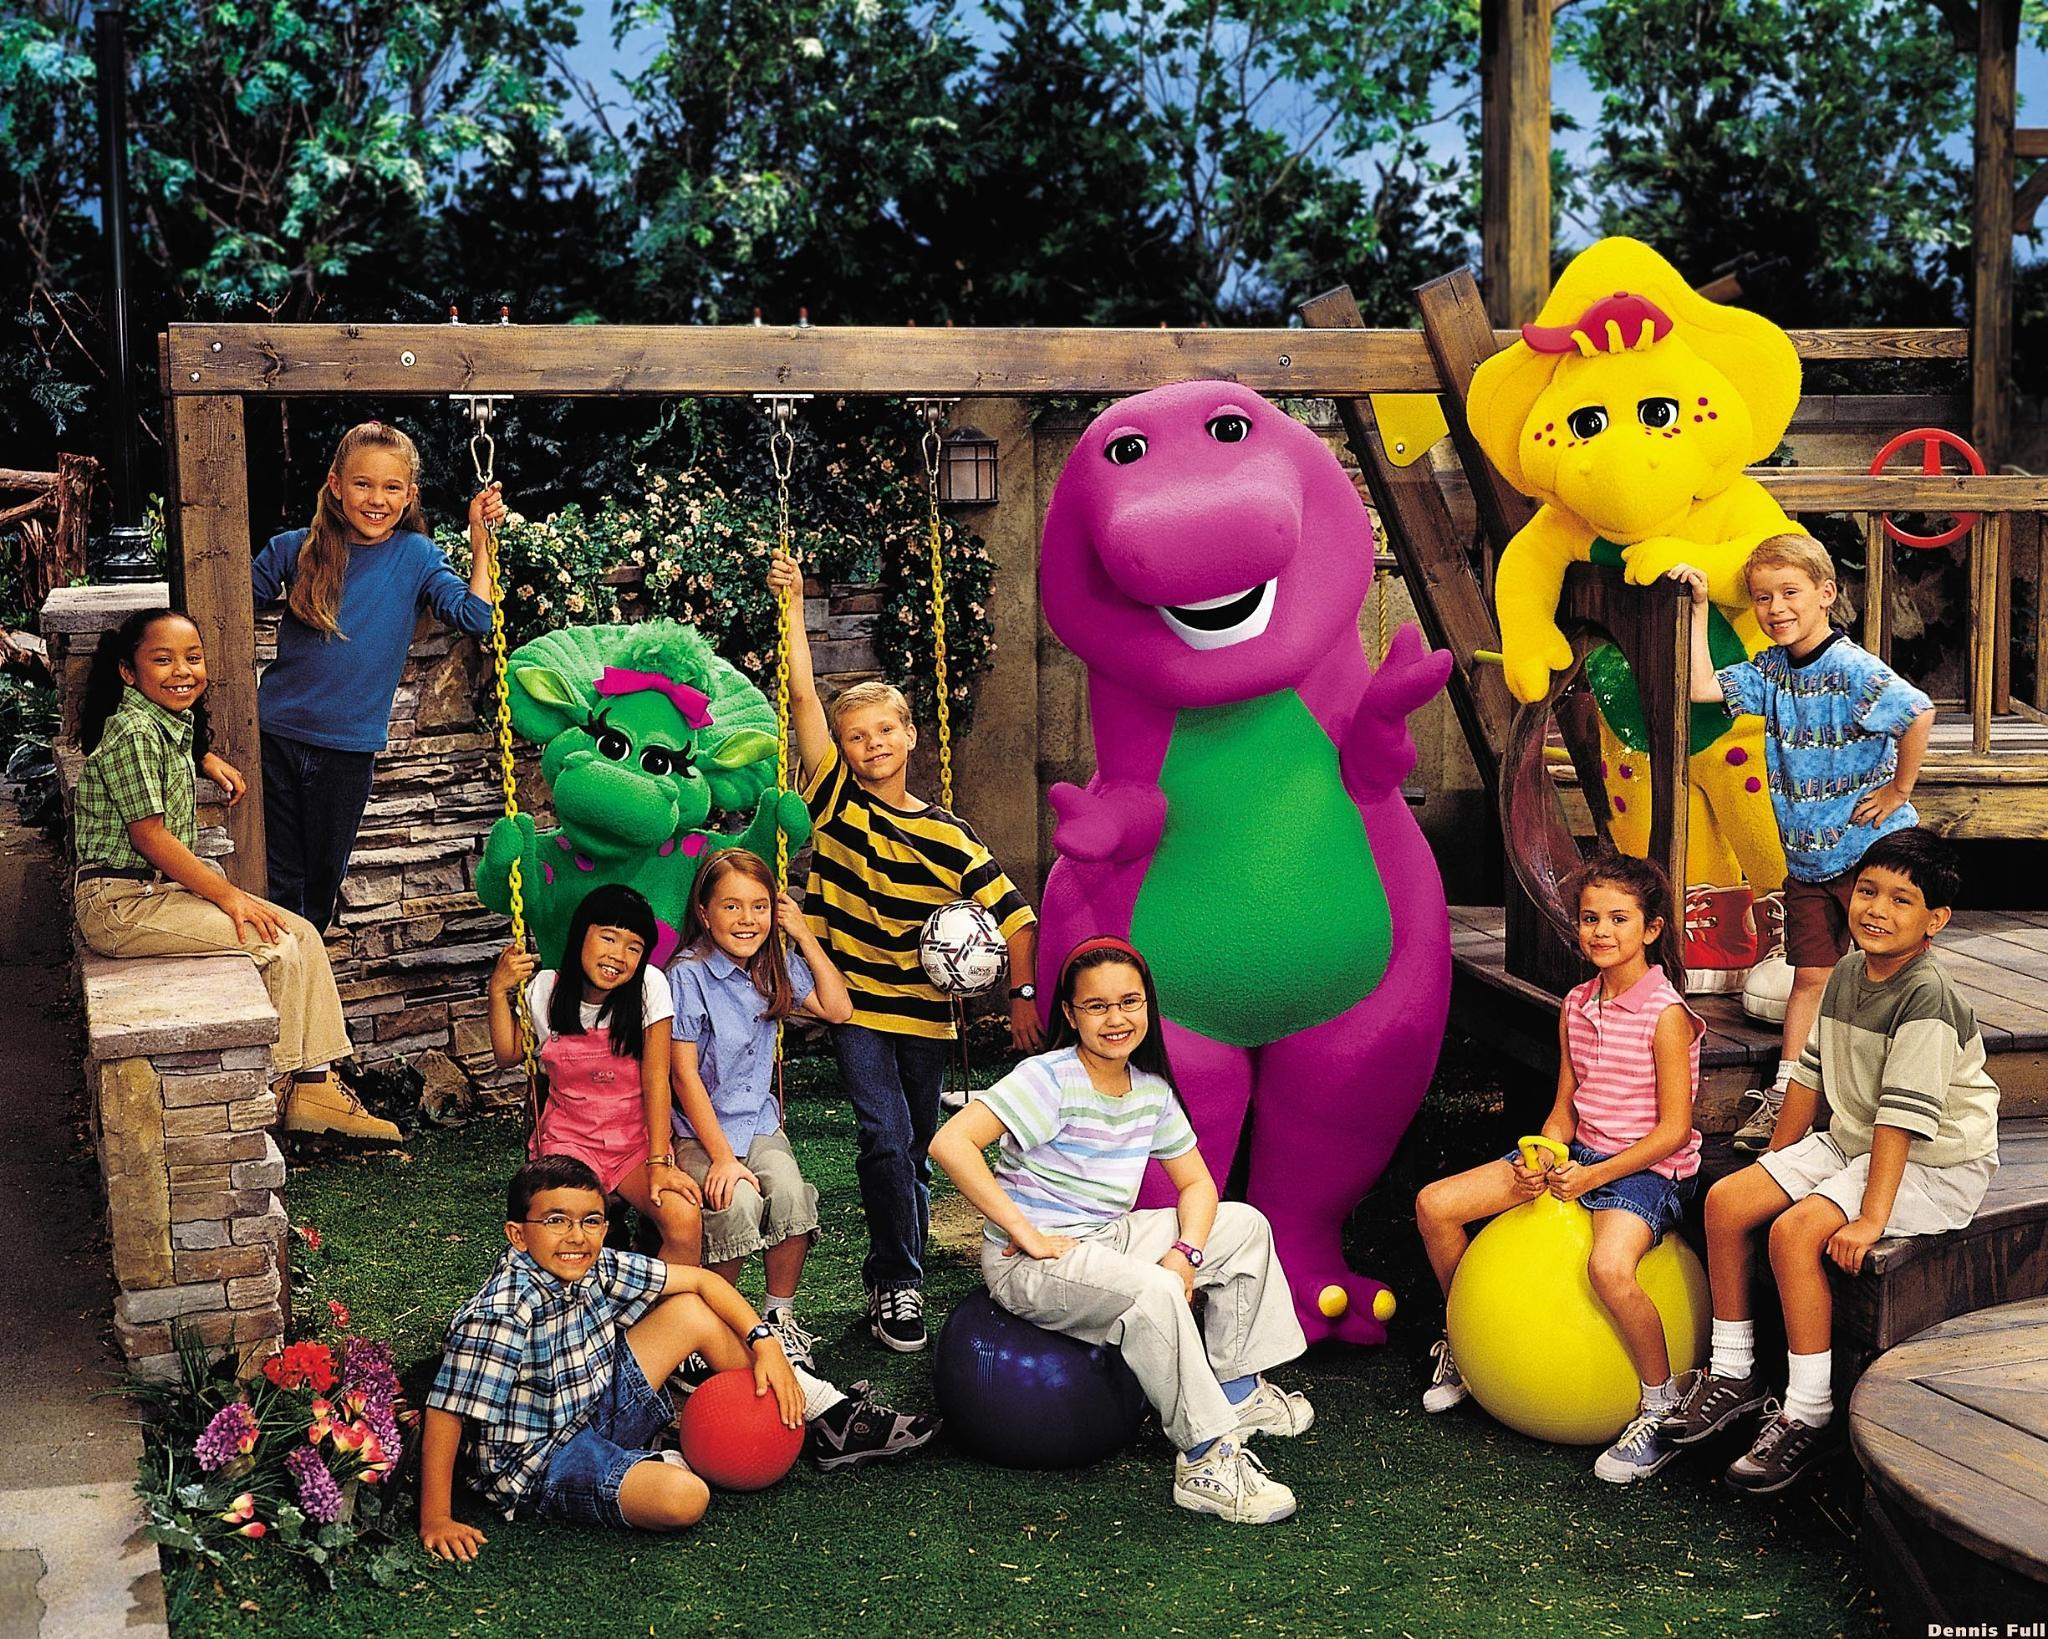 In Barney And Friends, what was Selena Gomez's charecter's name?